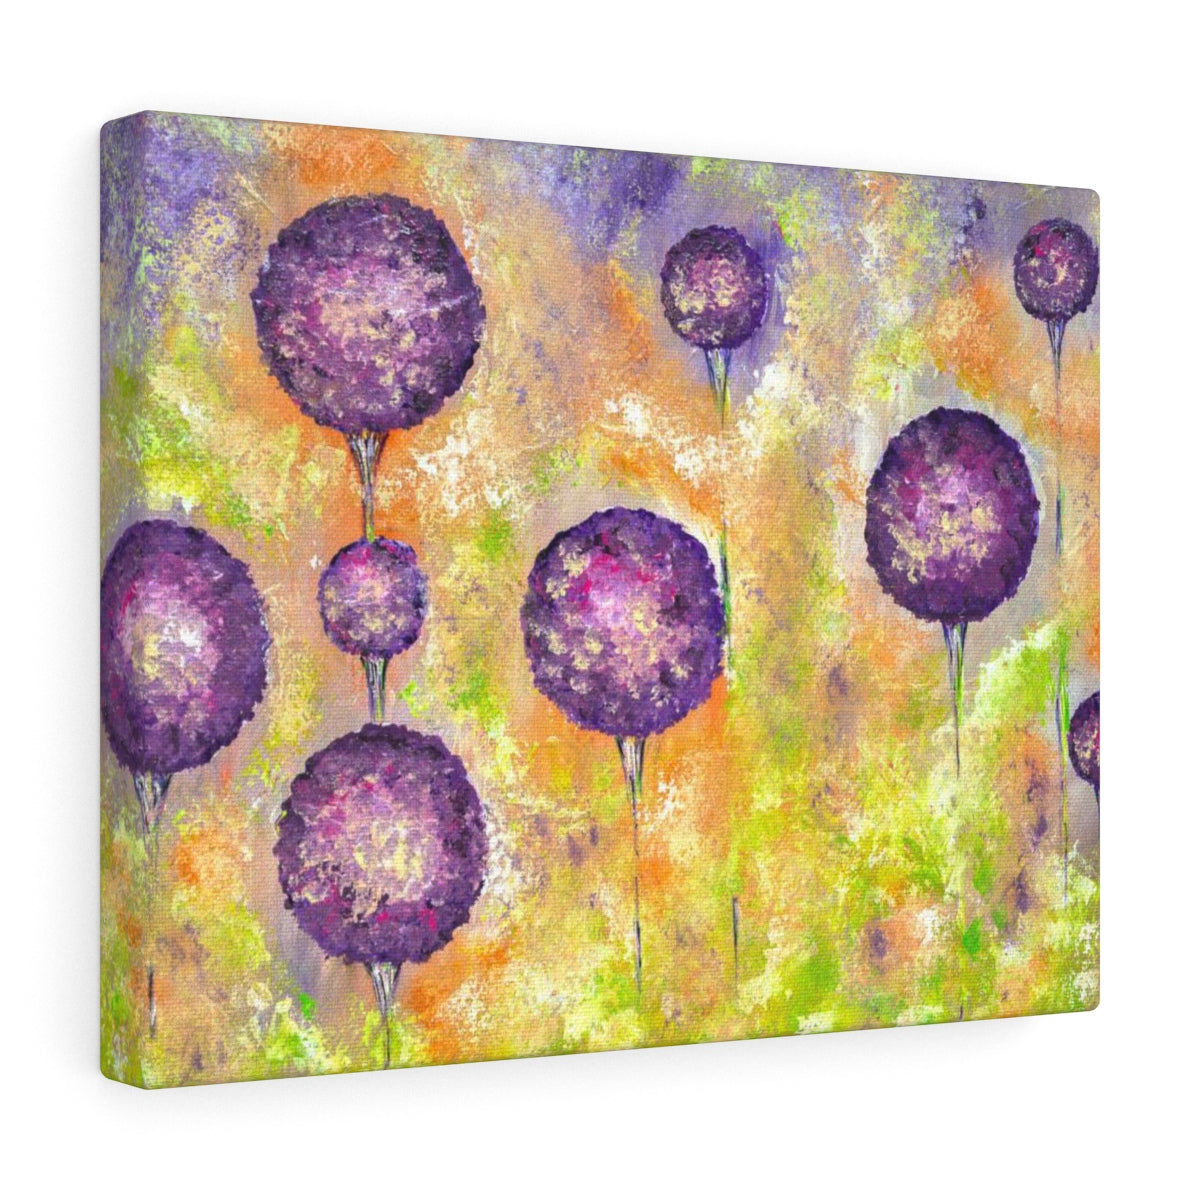 Floral Canvas Print for Her - Floral Painting | Brandless Artist